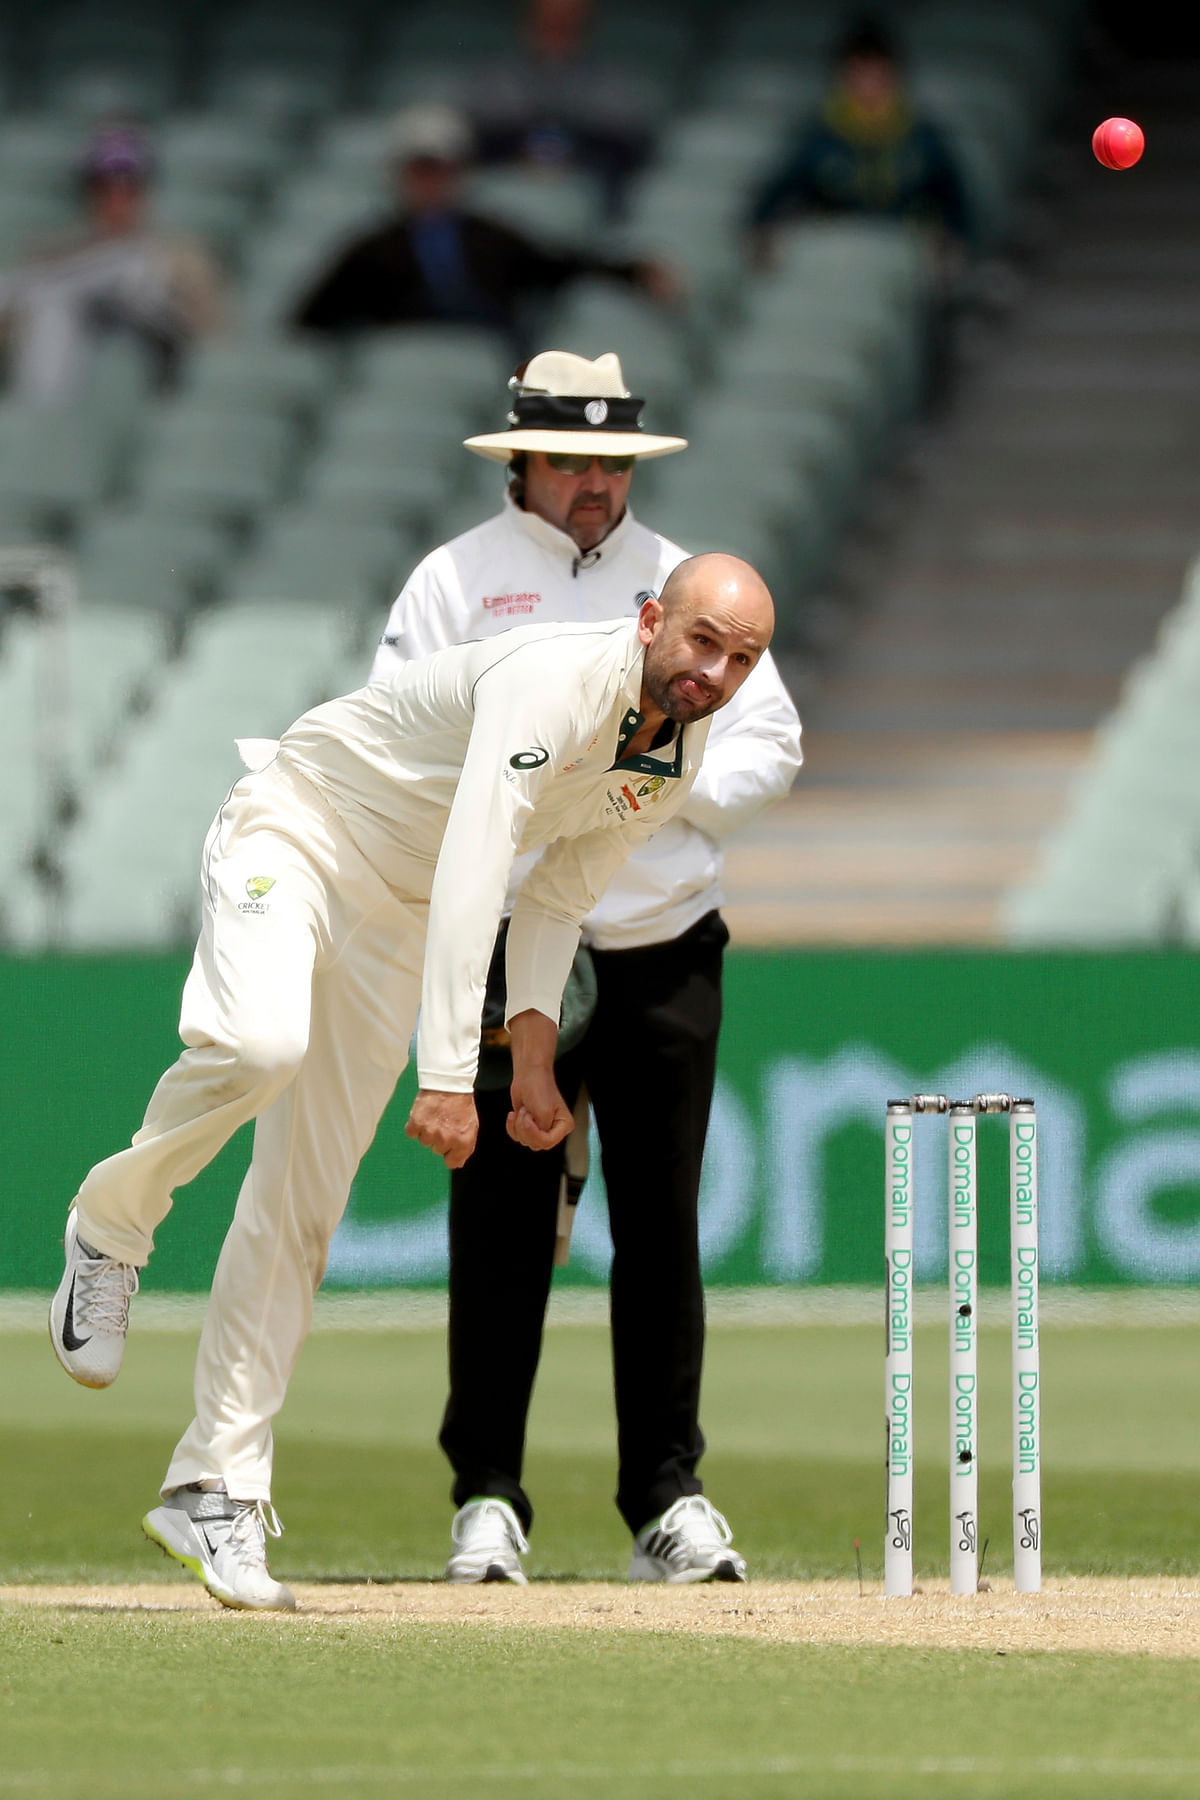 Australia's Nathan Lyon bowls during their cricket Test match against Pakistan in Adelaide.